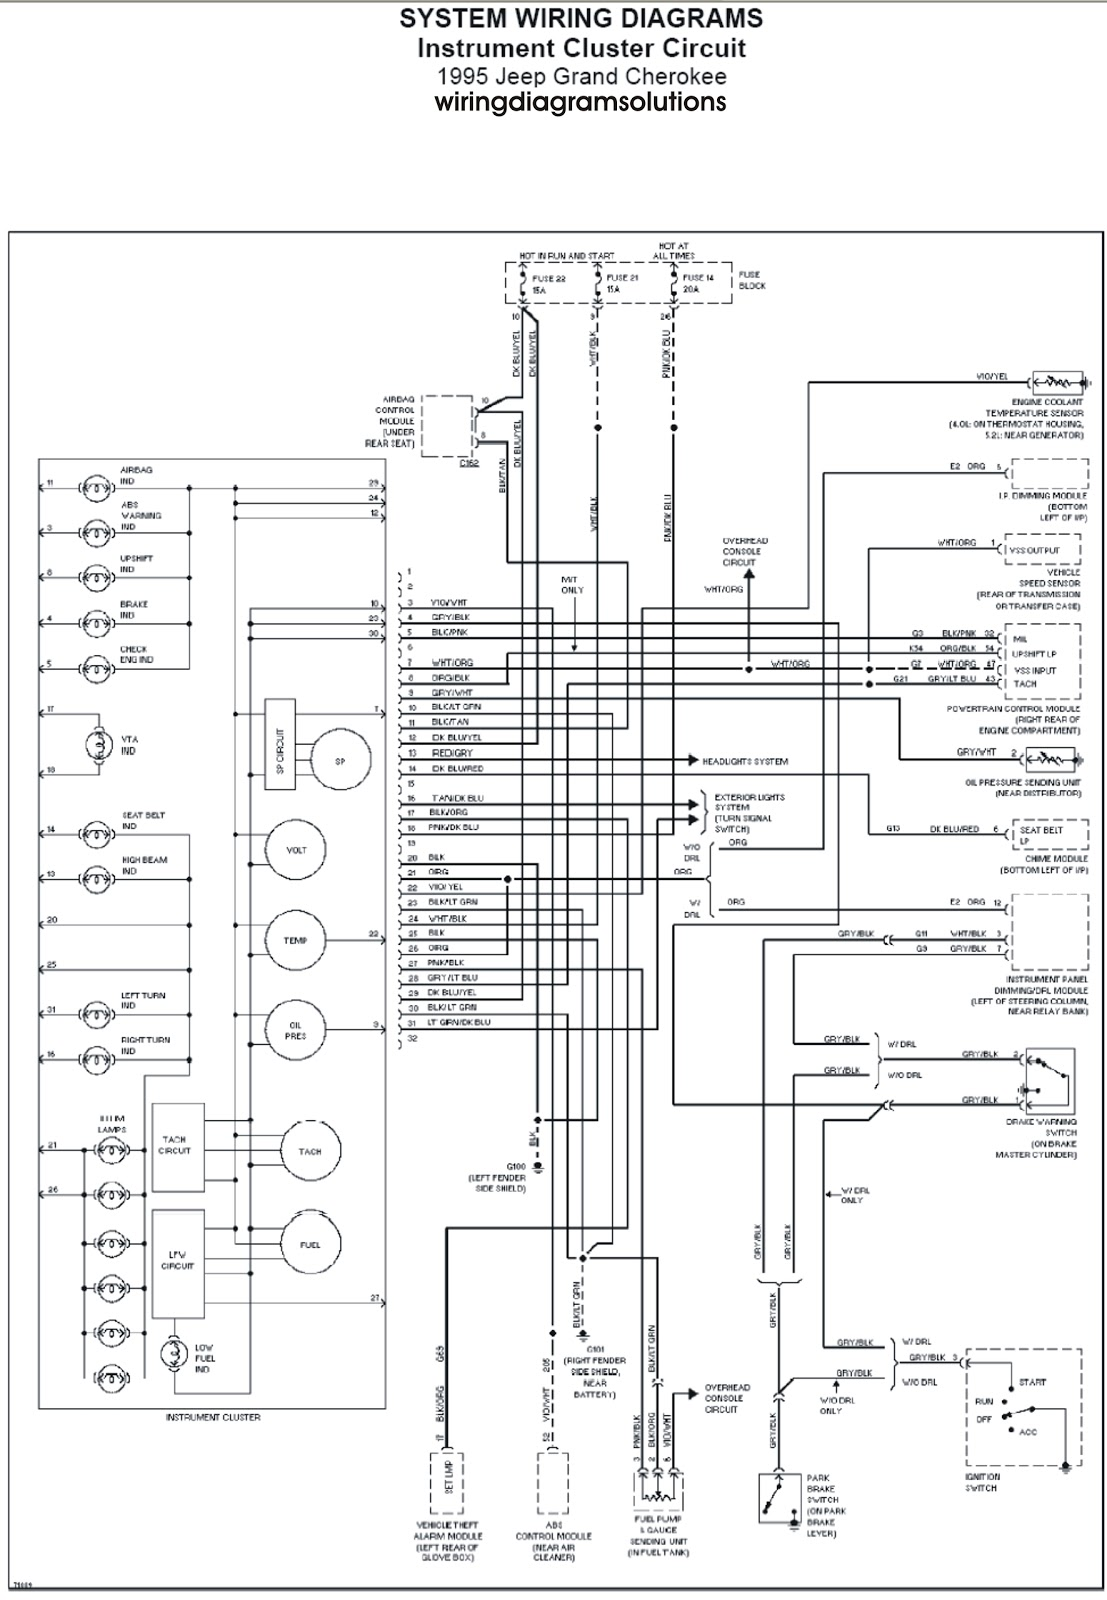 1996 jeep auto shutdown relay circuit location2wiring diagram 1996 Jeep Cherokee Sunroof